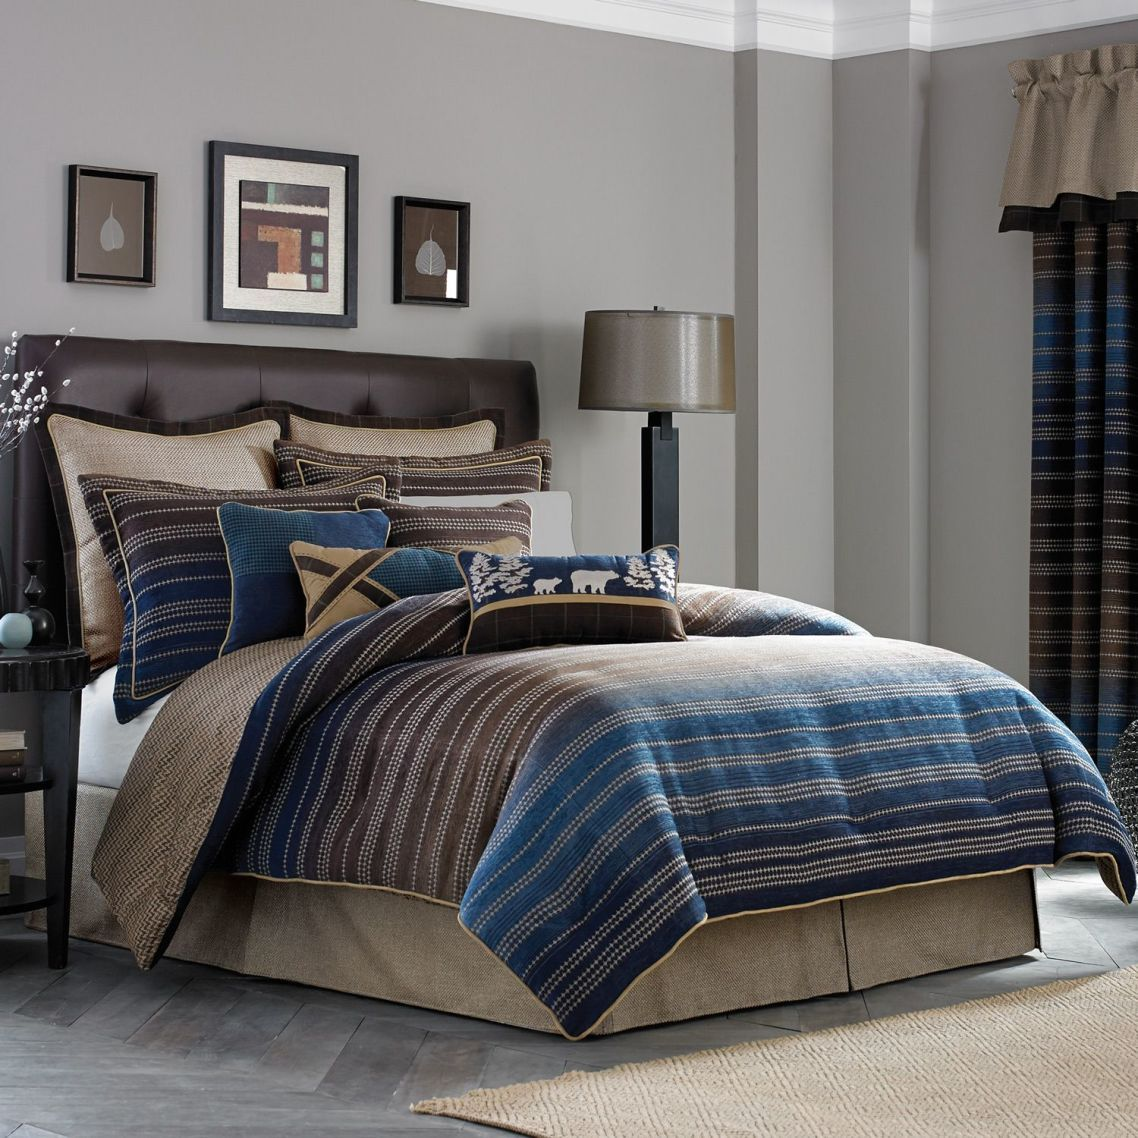 Cool Bed Sheets For Guys Pawlmkro Masculine Bedding Masculine